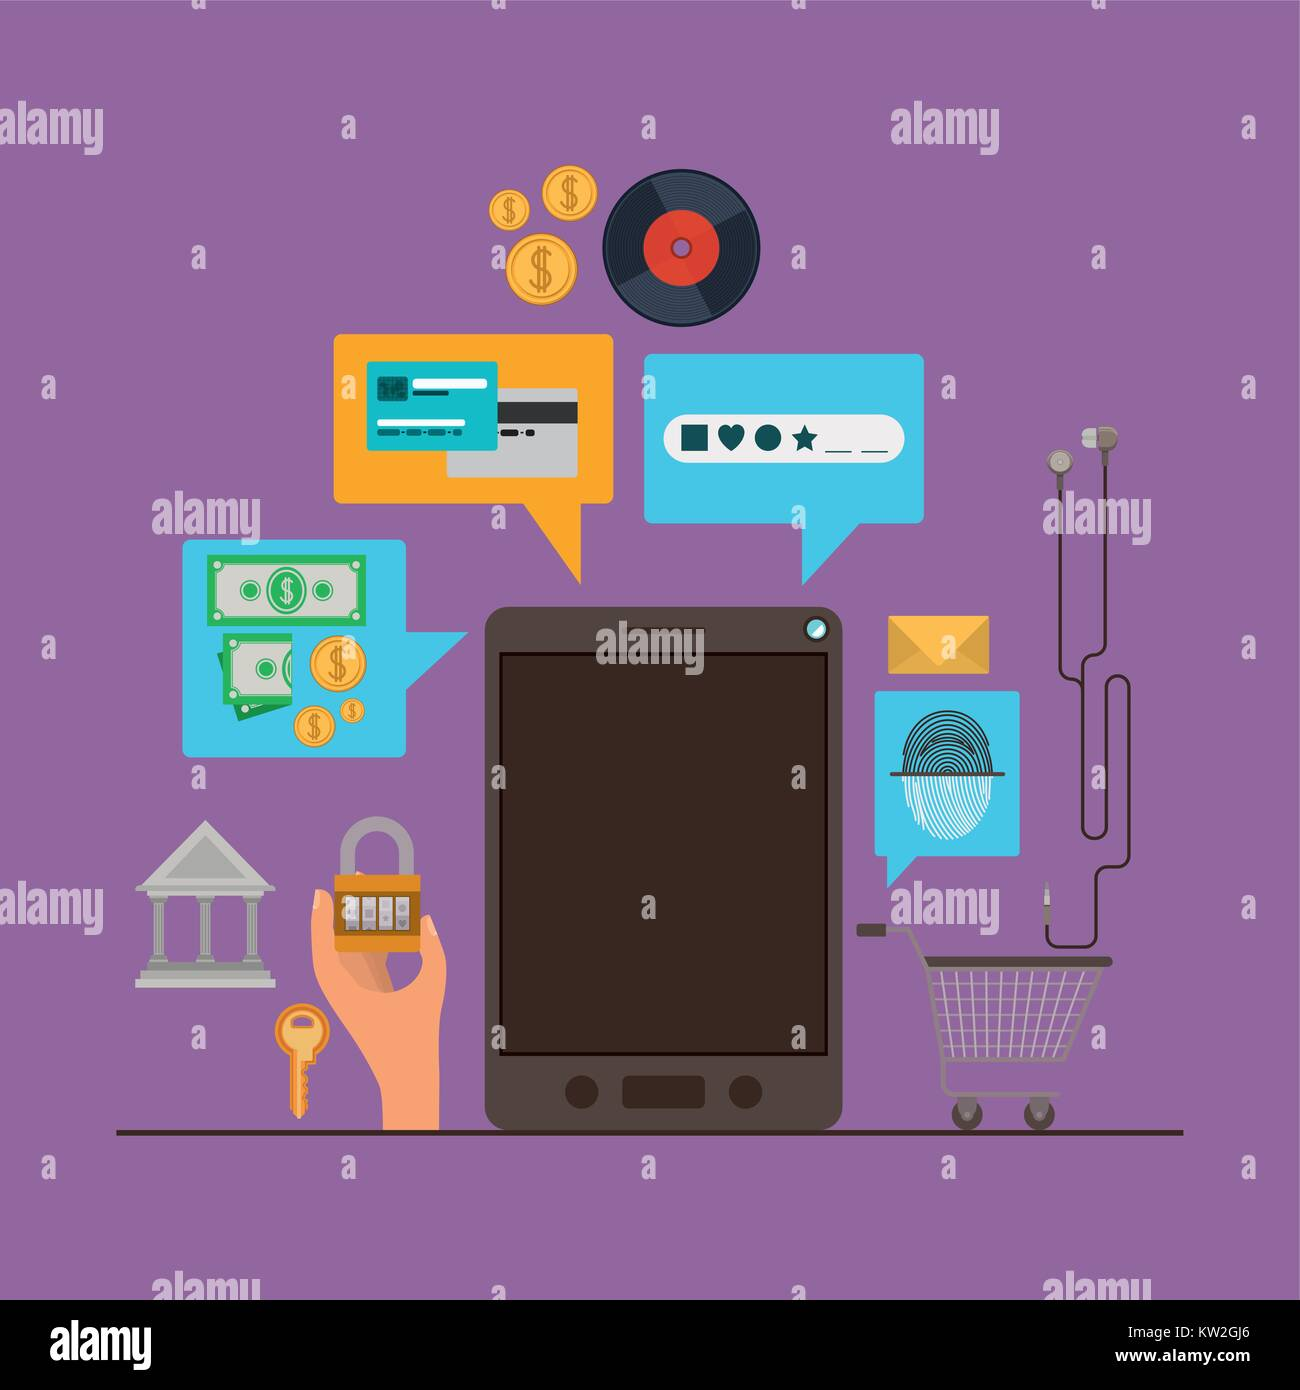 mobile security with tablet device and secure apps in purple color background - Stock Image